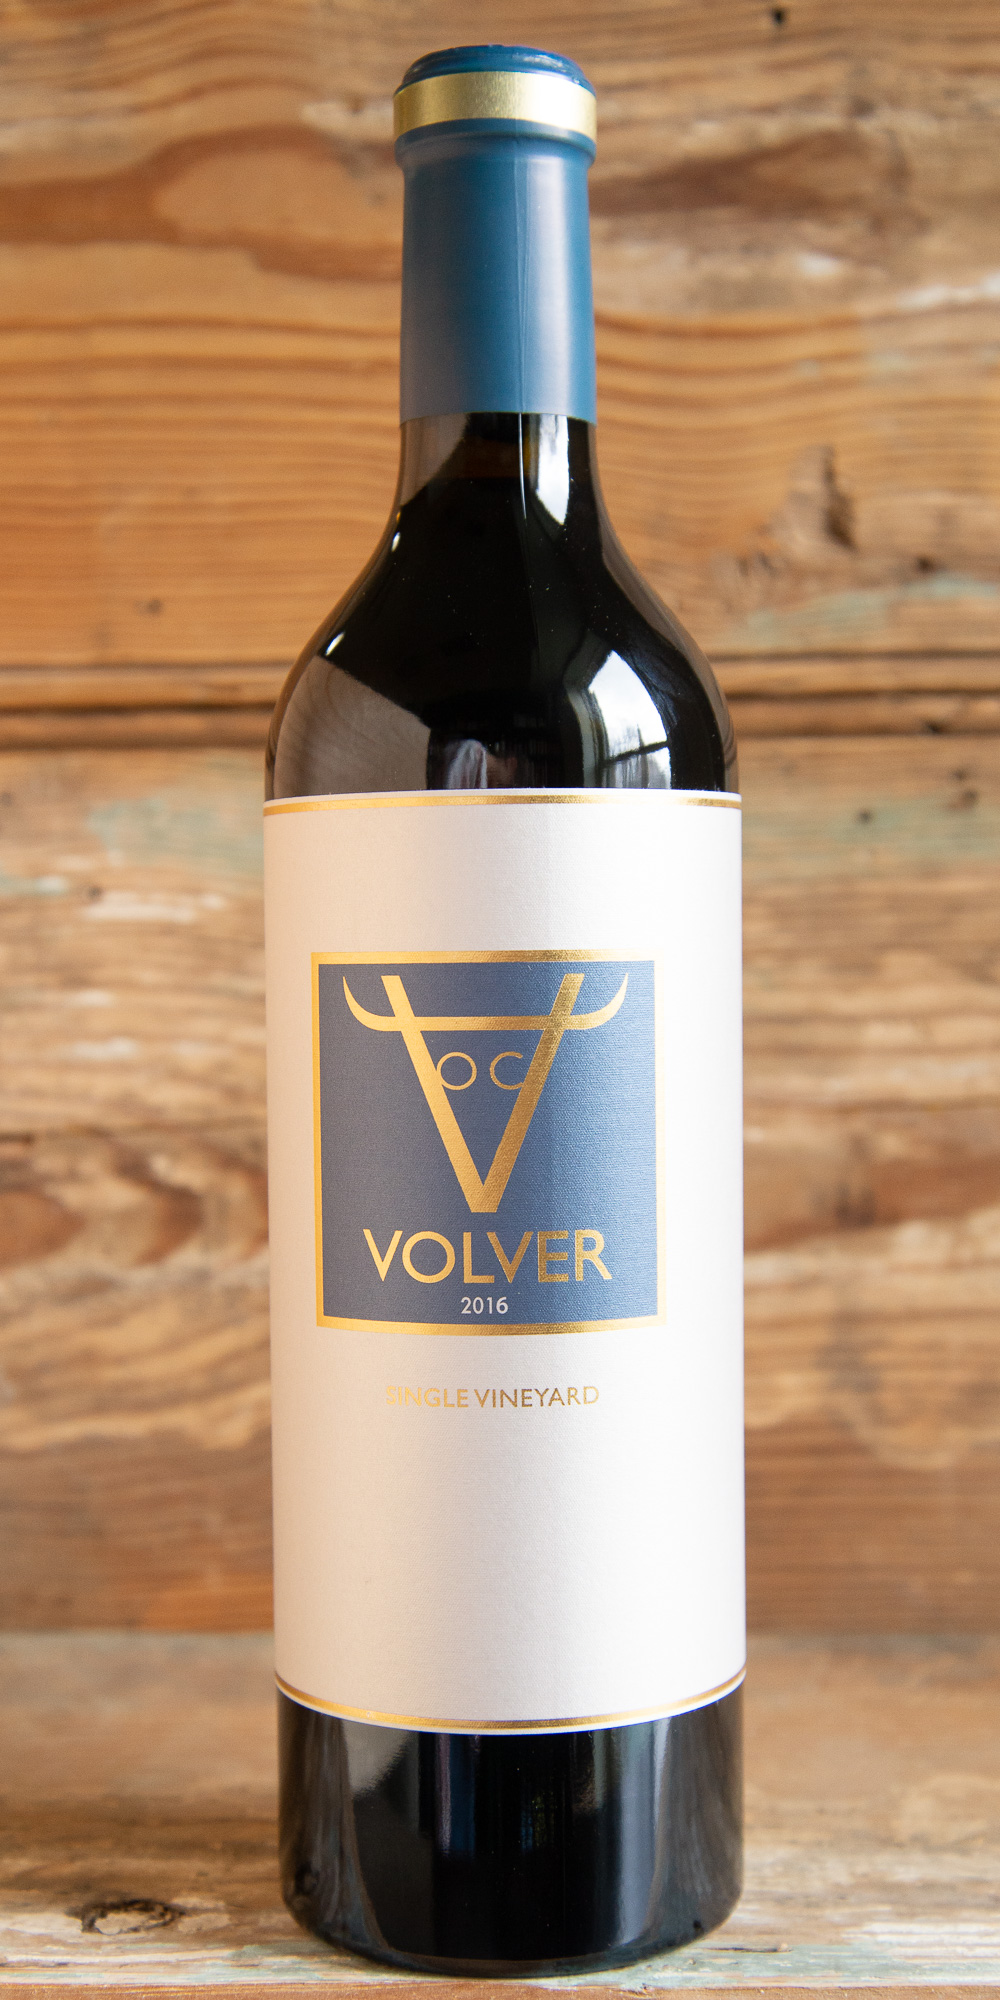 Volver Single Vineyard Tempranillo 2016 - Origin: SpainRetail: $18.95 | Sale: $17.05From a site planted in 1957 and made from 100% Tempranillo, this wine is an exceptional value. A strikingly aromatic nose offers an array of fruit, floral and herbal scents. Sweet cherry-vanilla and cola flavors coat the palate and are enlivened by juicy acidity. Supple tannins gain strength on the finish, which strongly repeats the cola and floral qualities.100% Tempranillo92 Points James Suckling | 91 Points Jeb Dunnuck